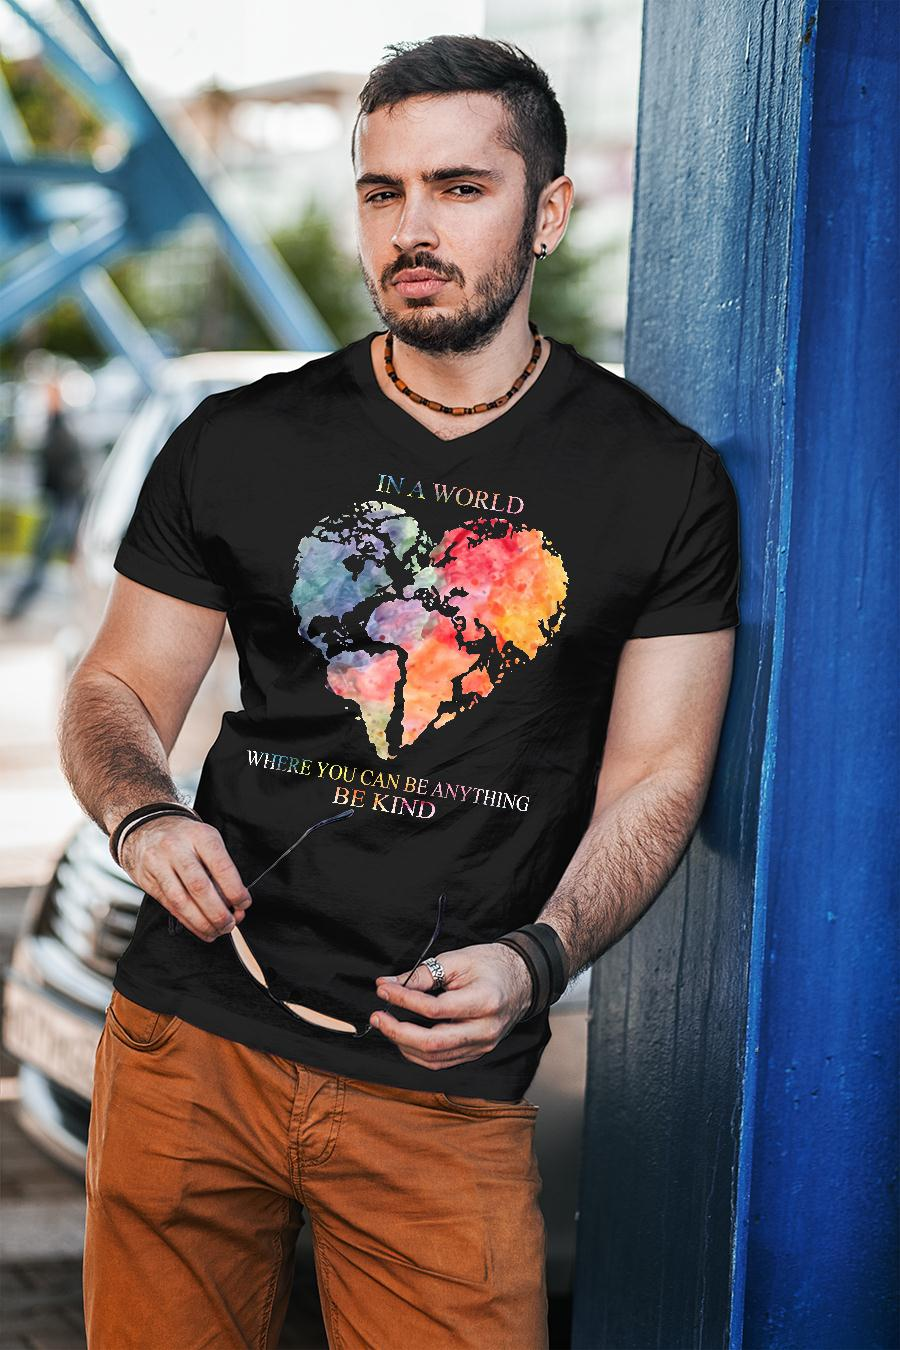 Earth Heart In a world where you can be anything be kind shirt unisex